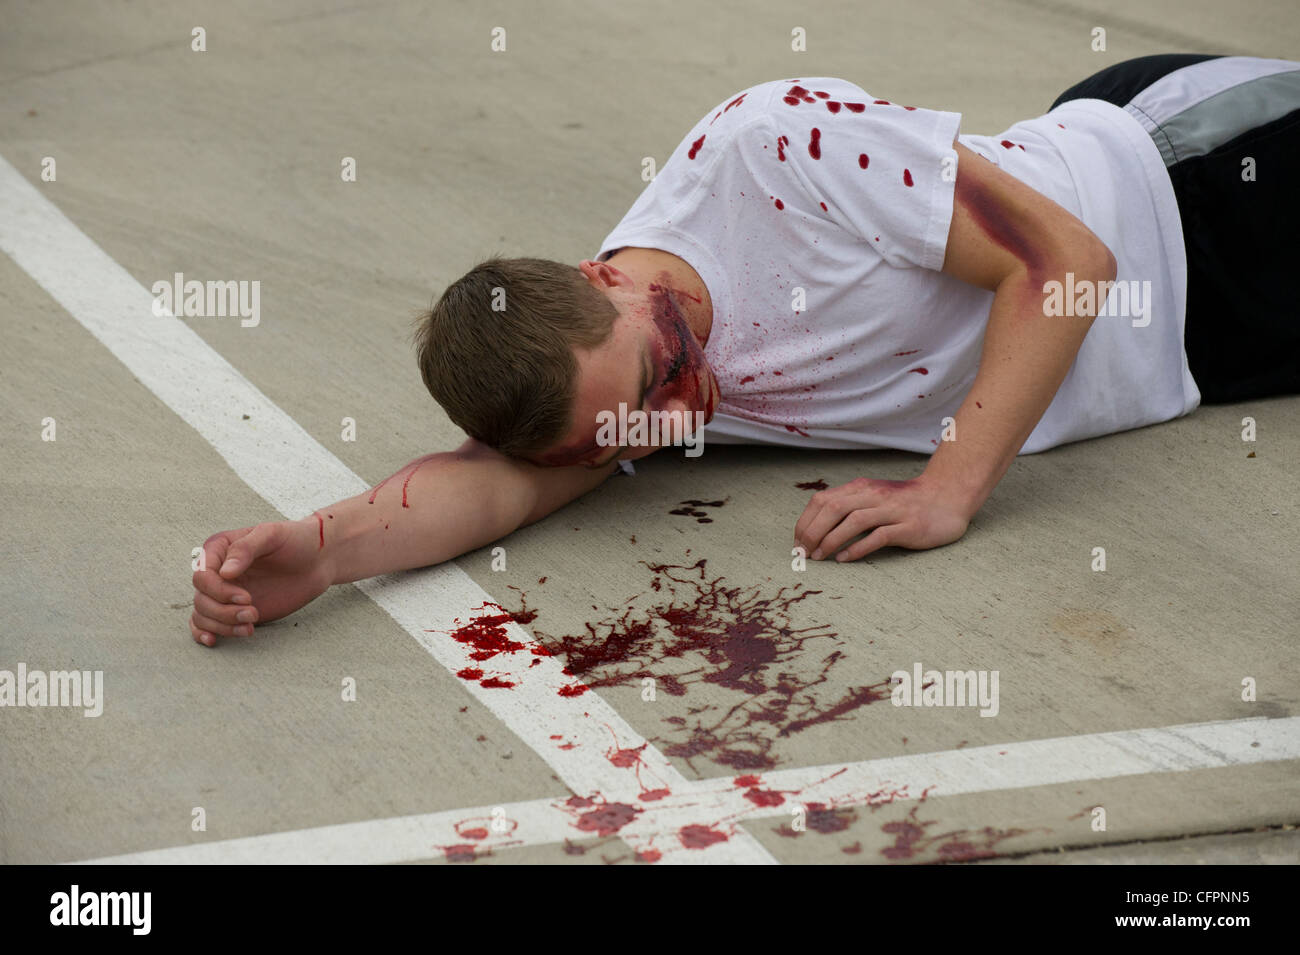 High school students participate in Shattered Dreams Program designed to educate the danger associated with drinking - Stock Image